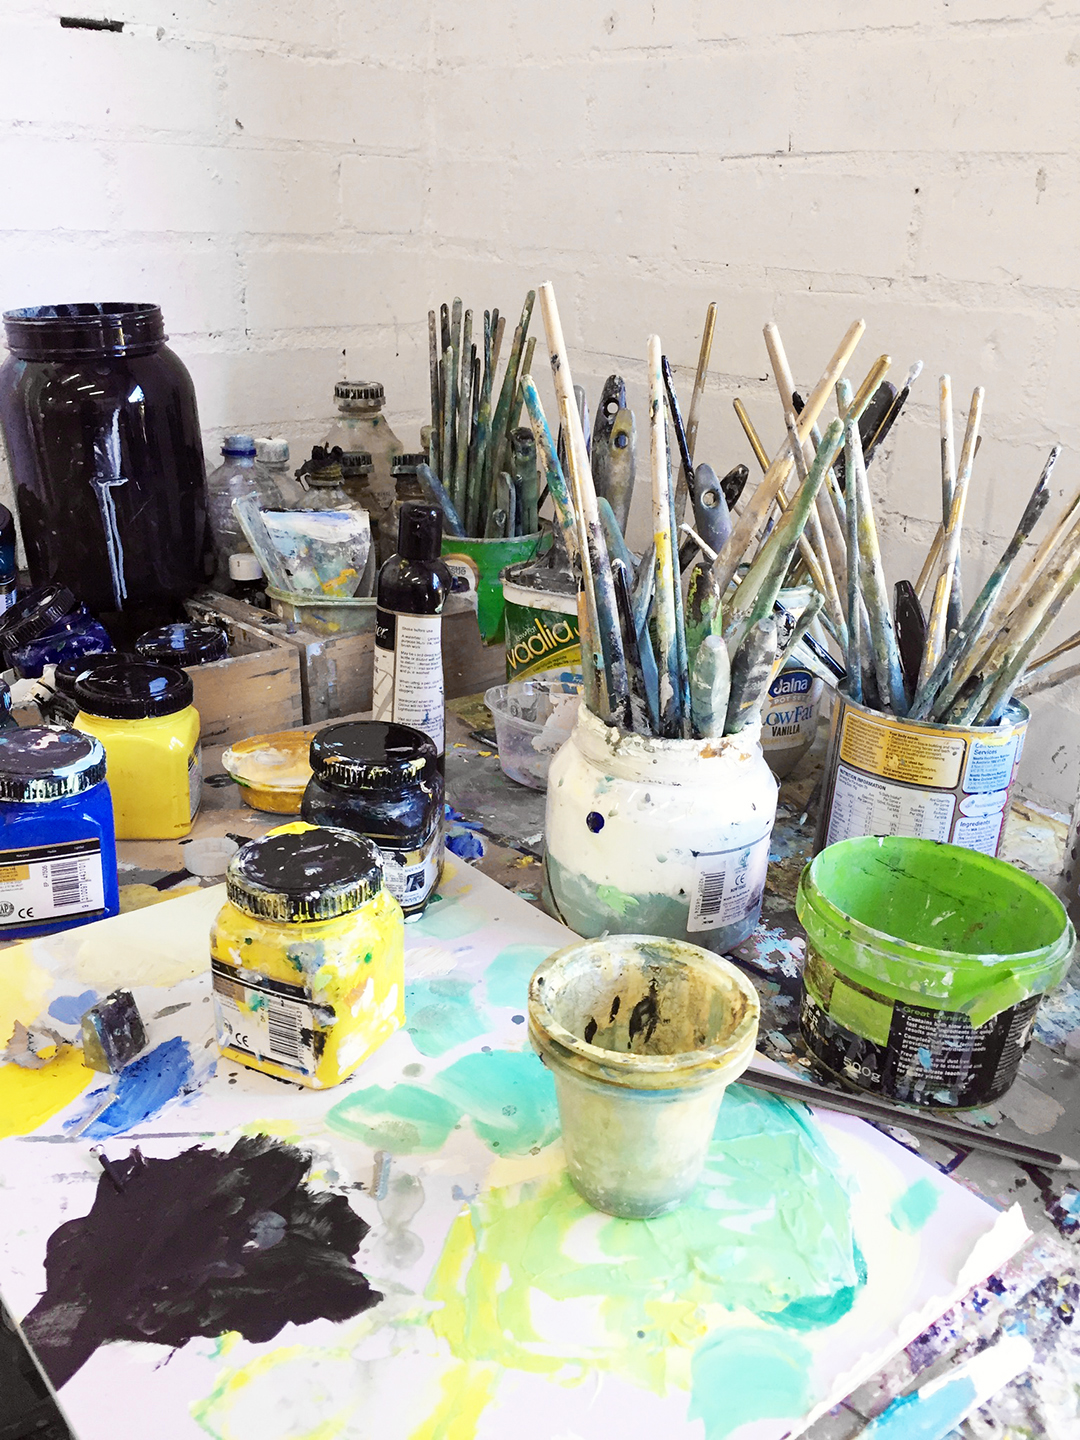 Studio visit with artist Amanda Tye